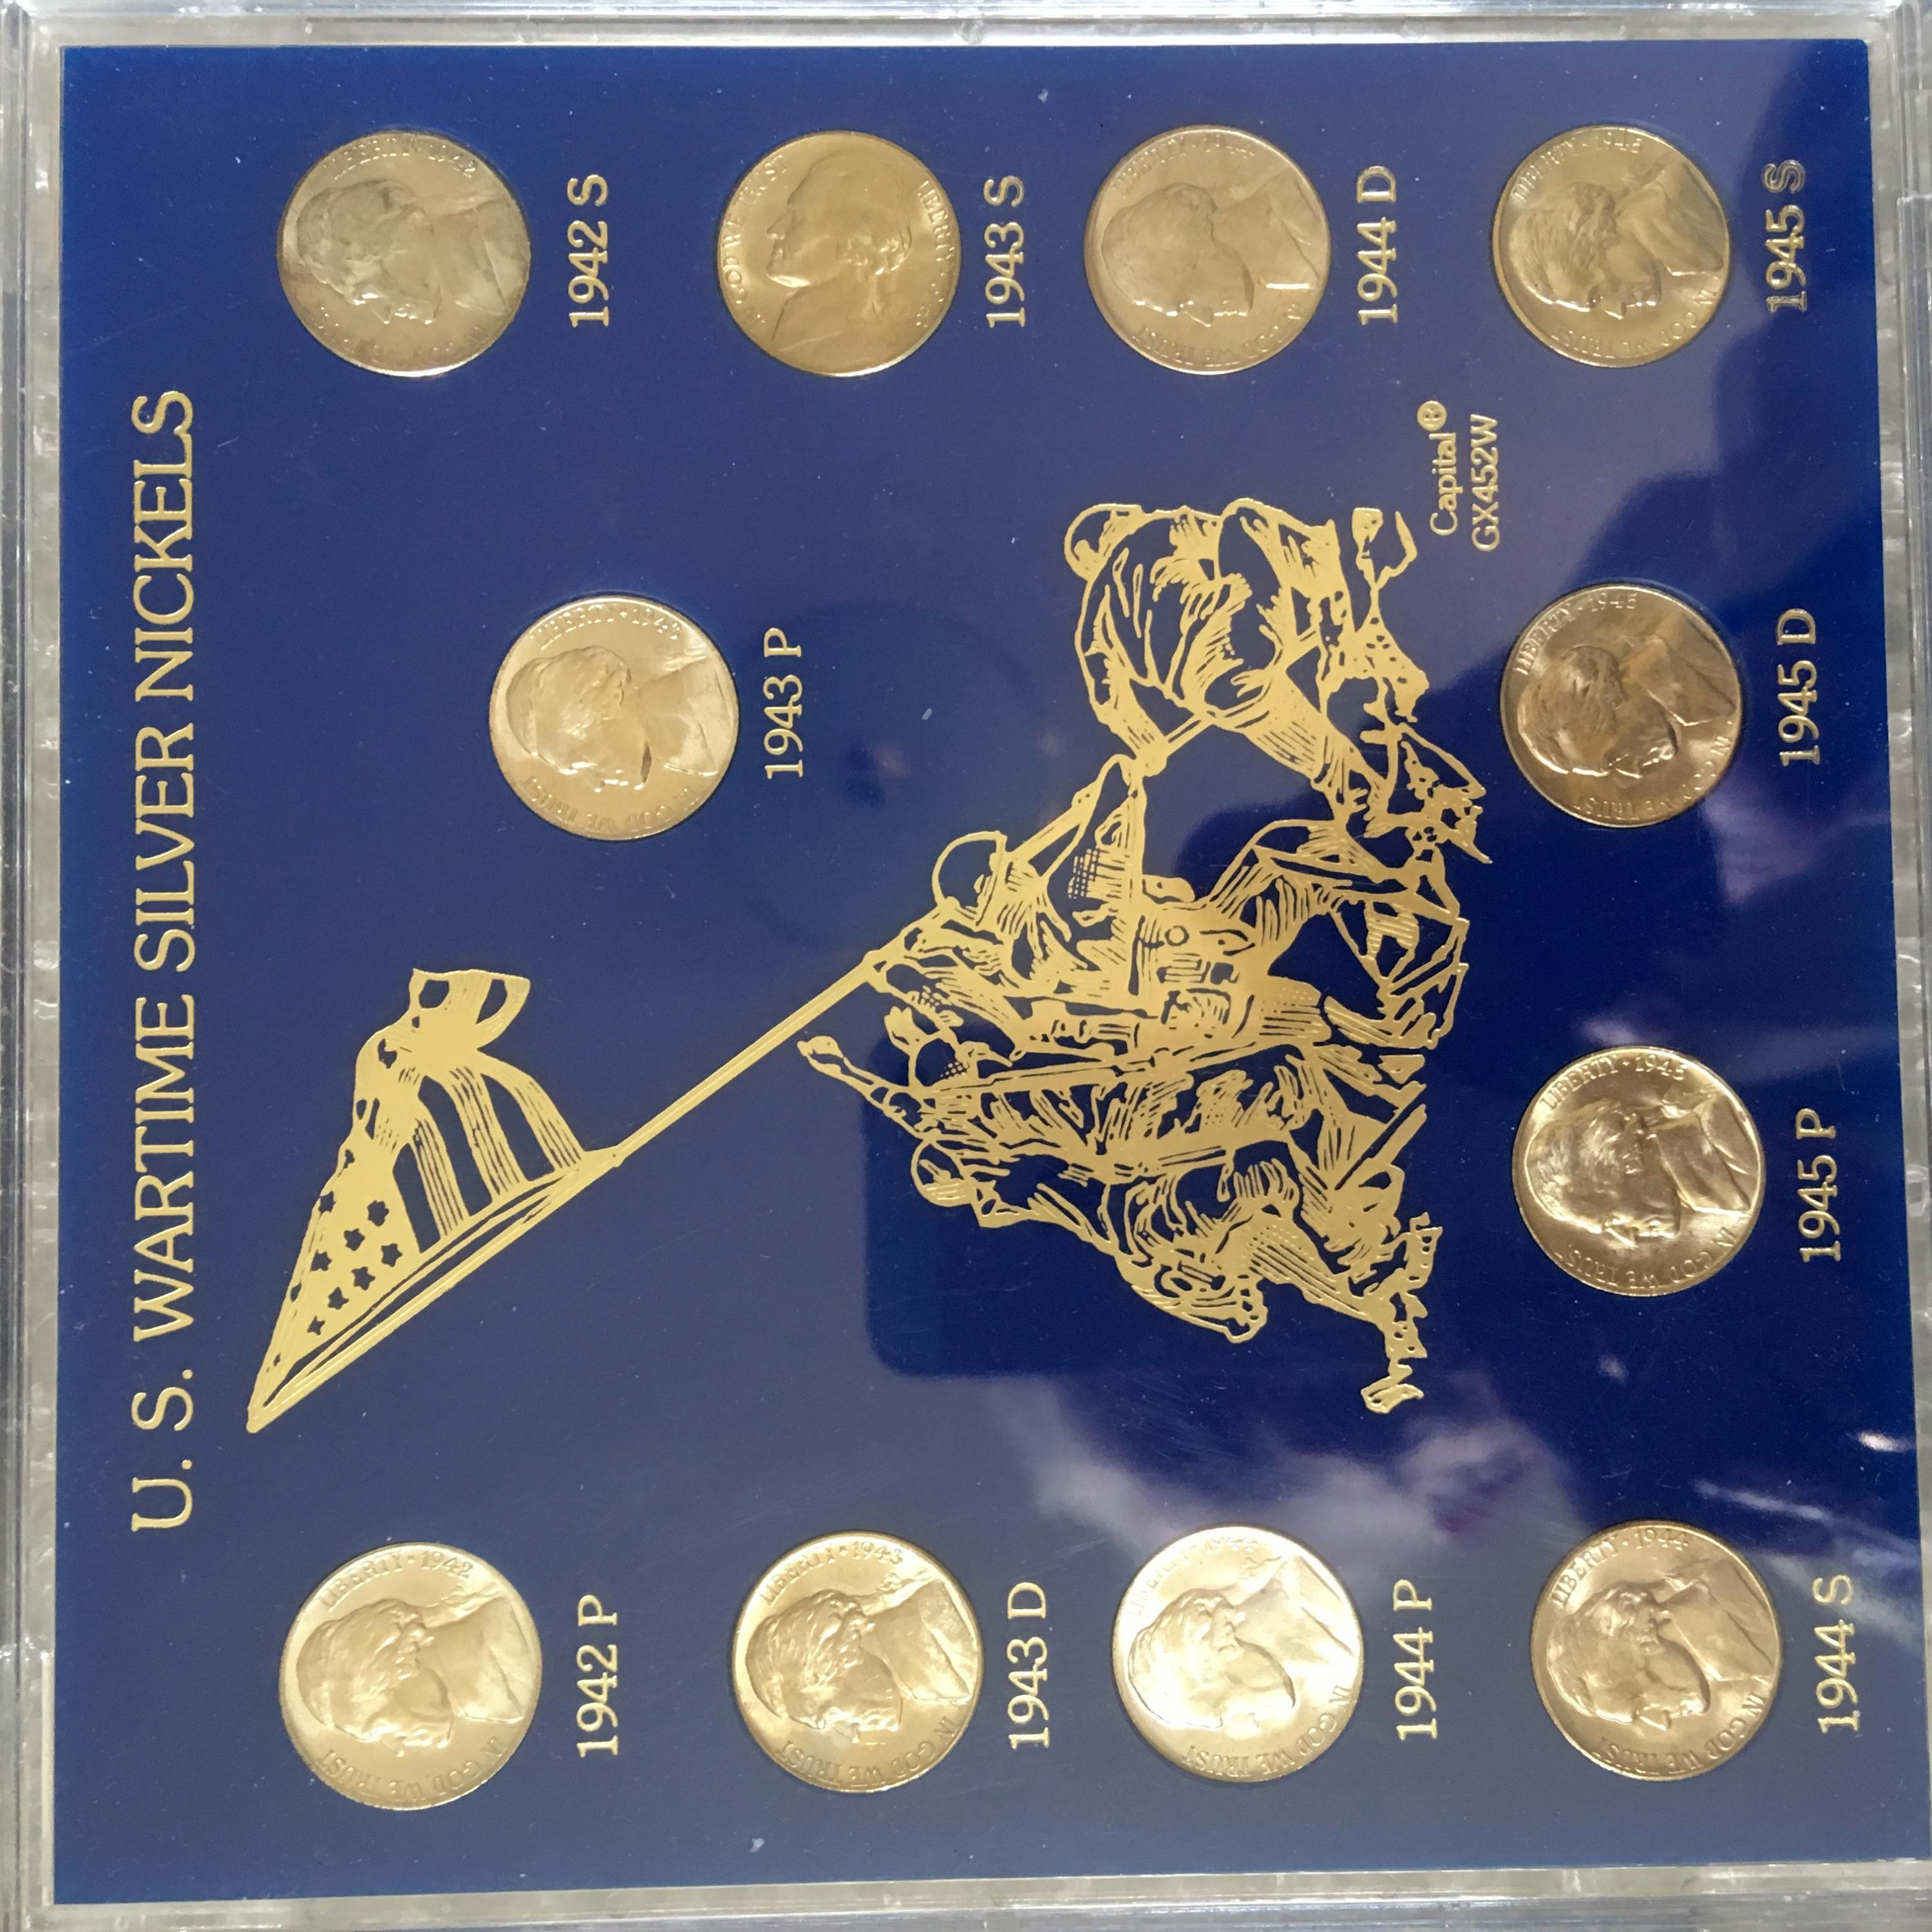 SILVER NICKELS IN DECORATIVE WWII SLAB, GOLD TONE COINS, PAID 297 00 COIN  SHOP